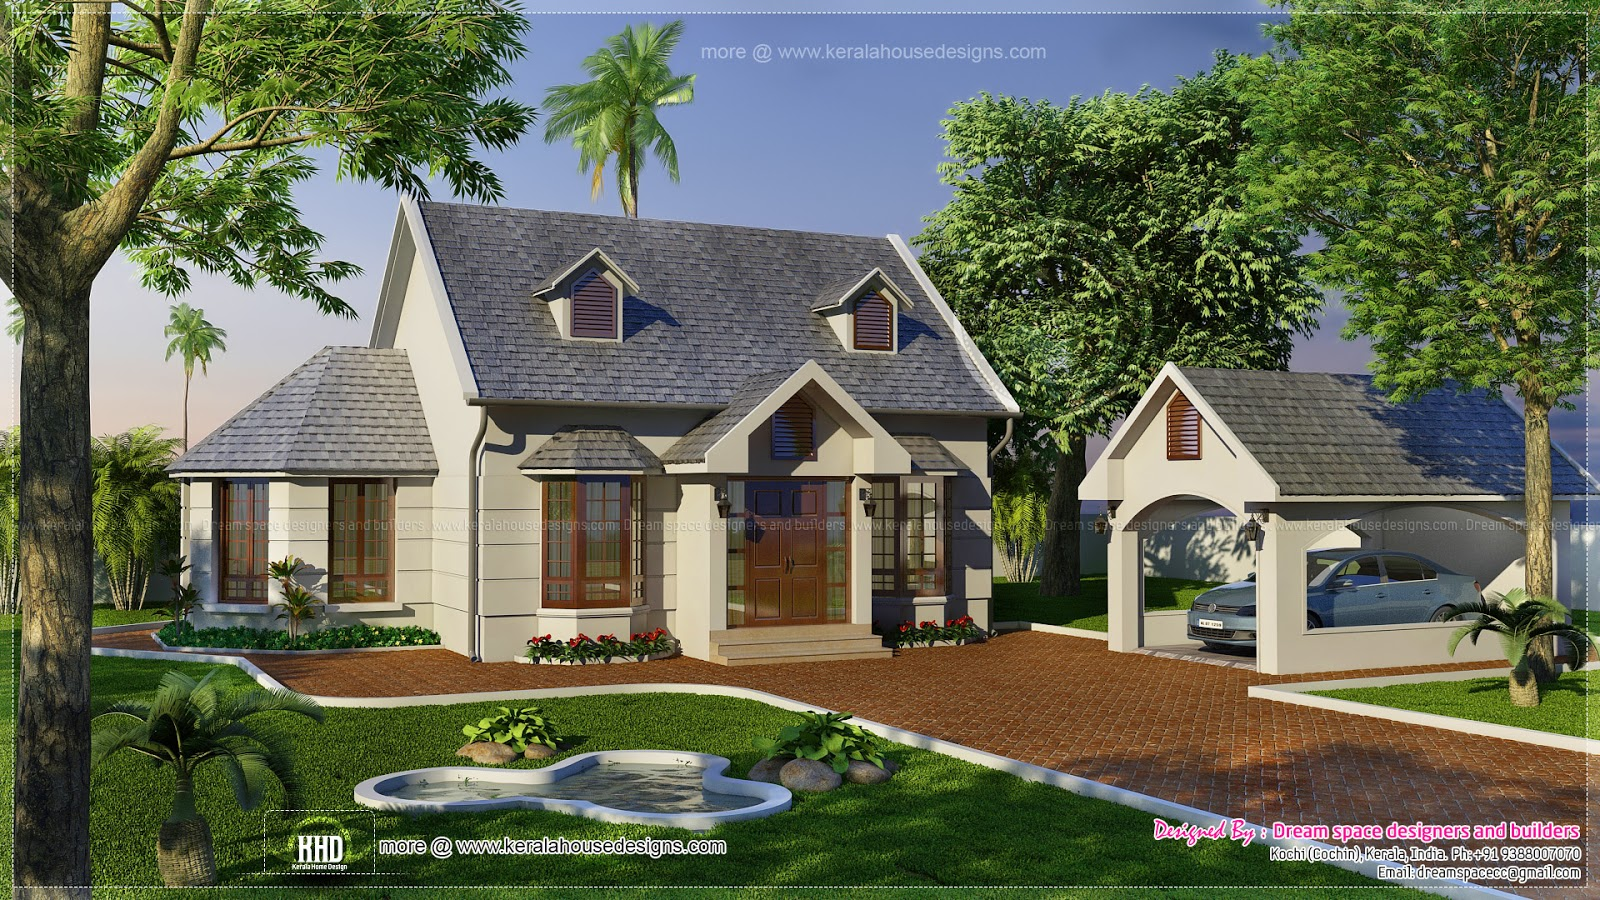 Vacation garden home design in 1200 home kerala for Garden home design plans